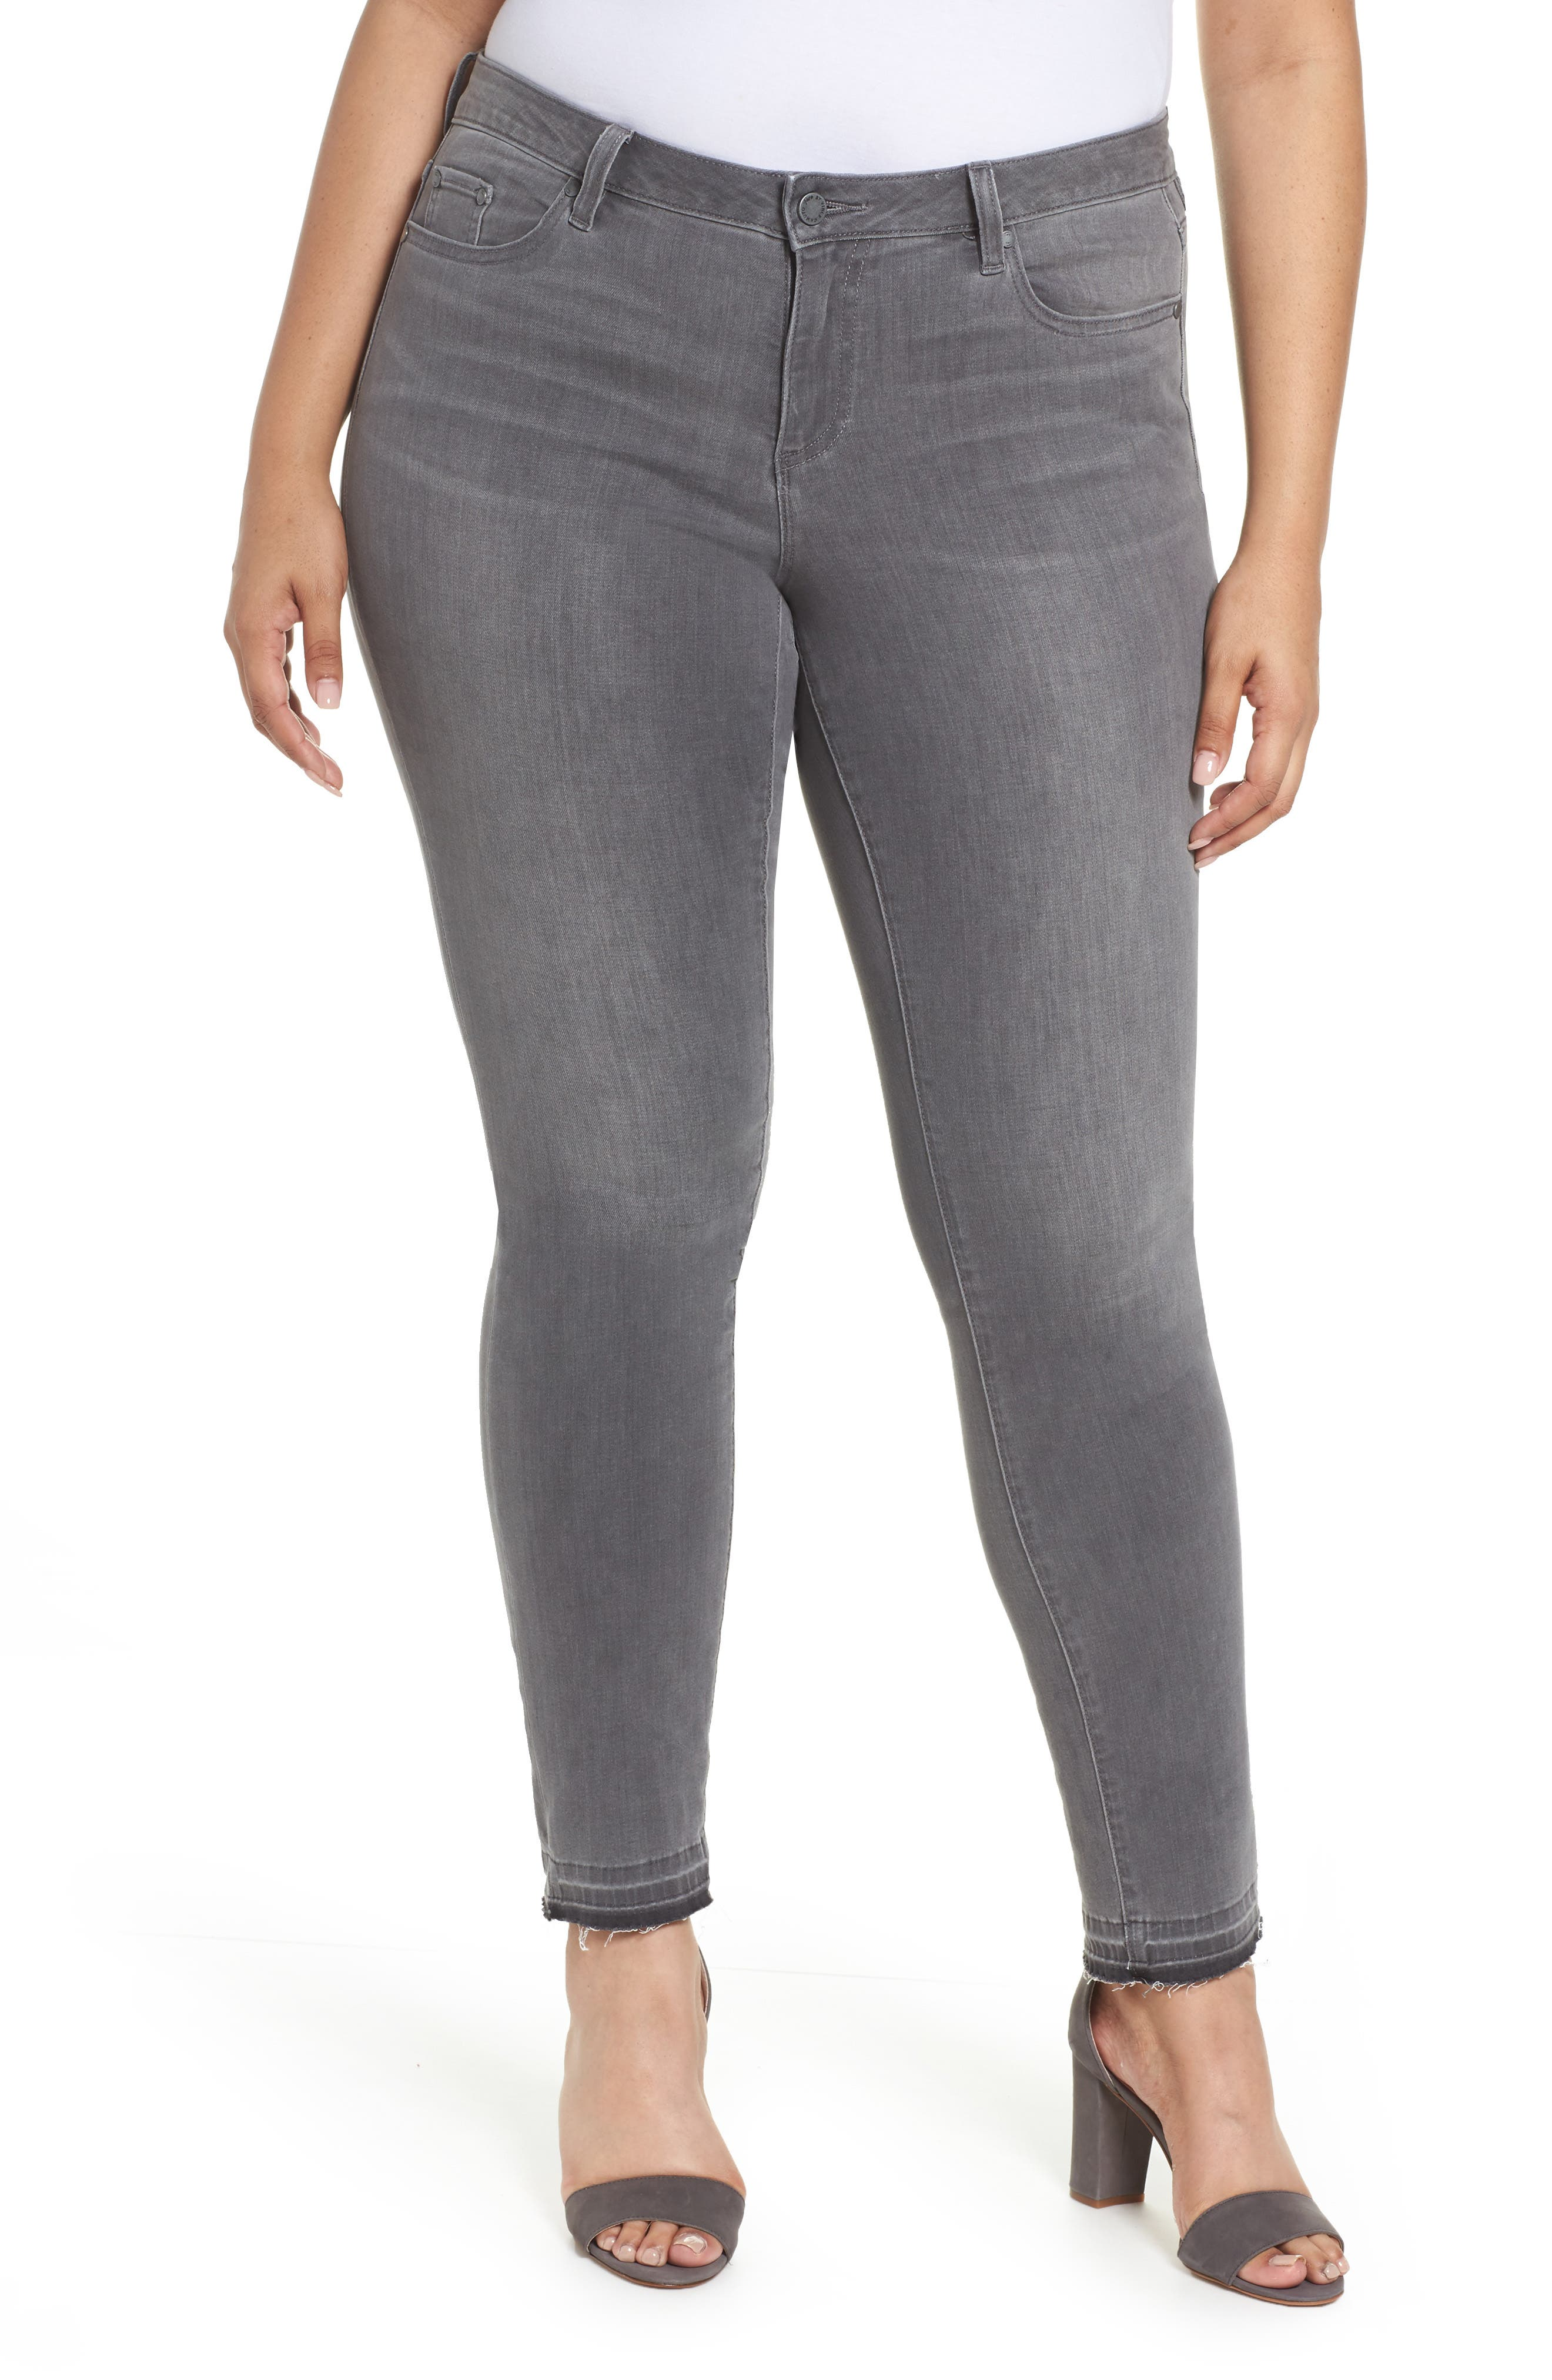 Alternate Image 1 Selected - Two by Vince Camuto Release Hem Skinny Jeans (Cobblestone) (Plus Size)